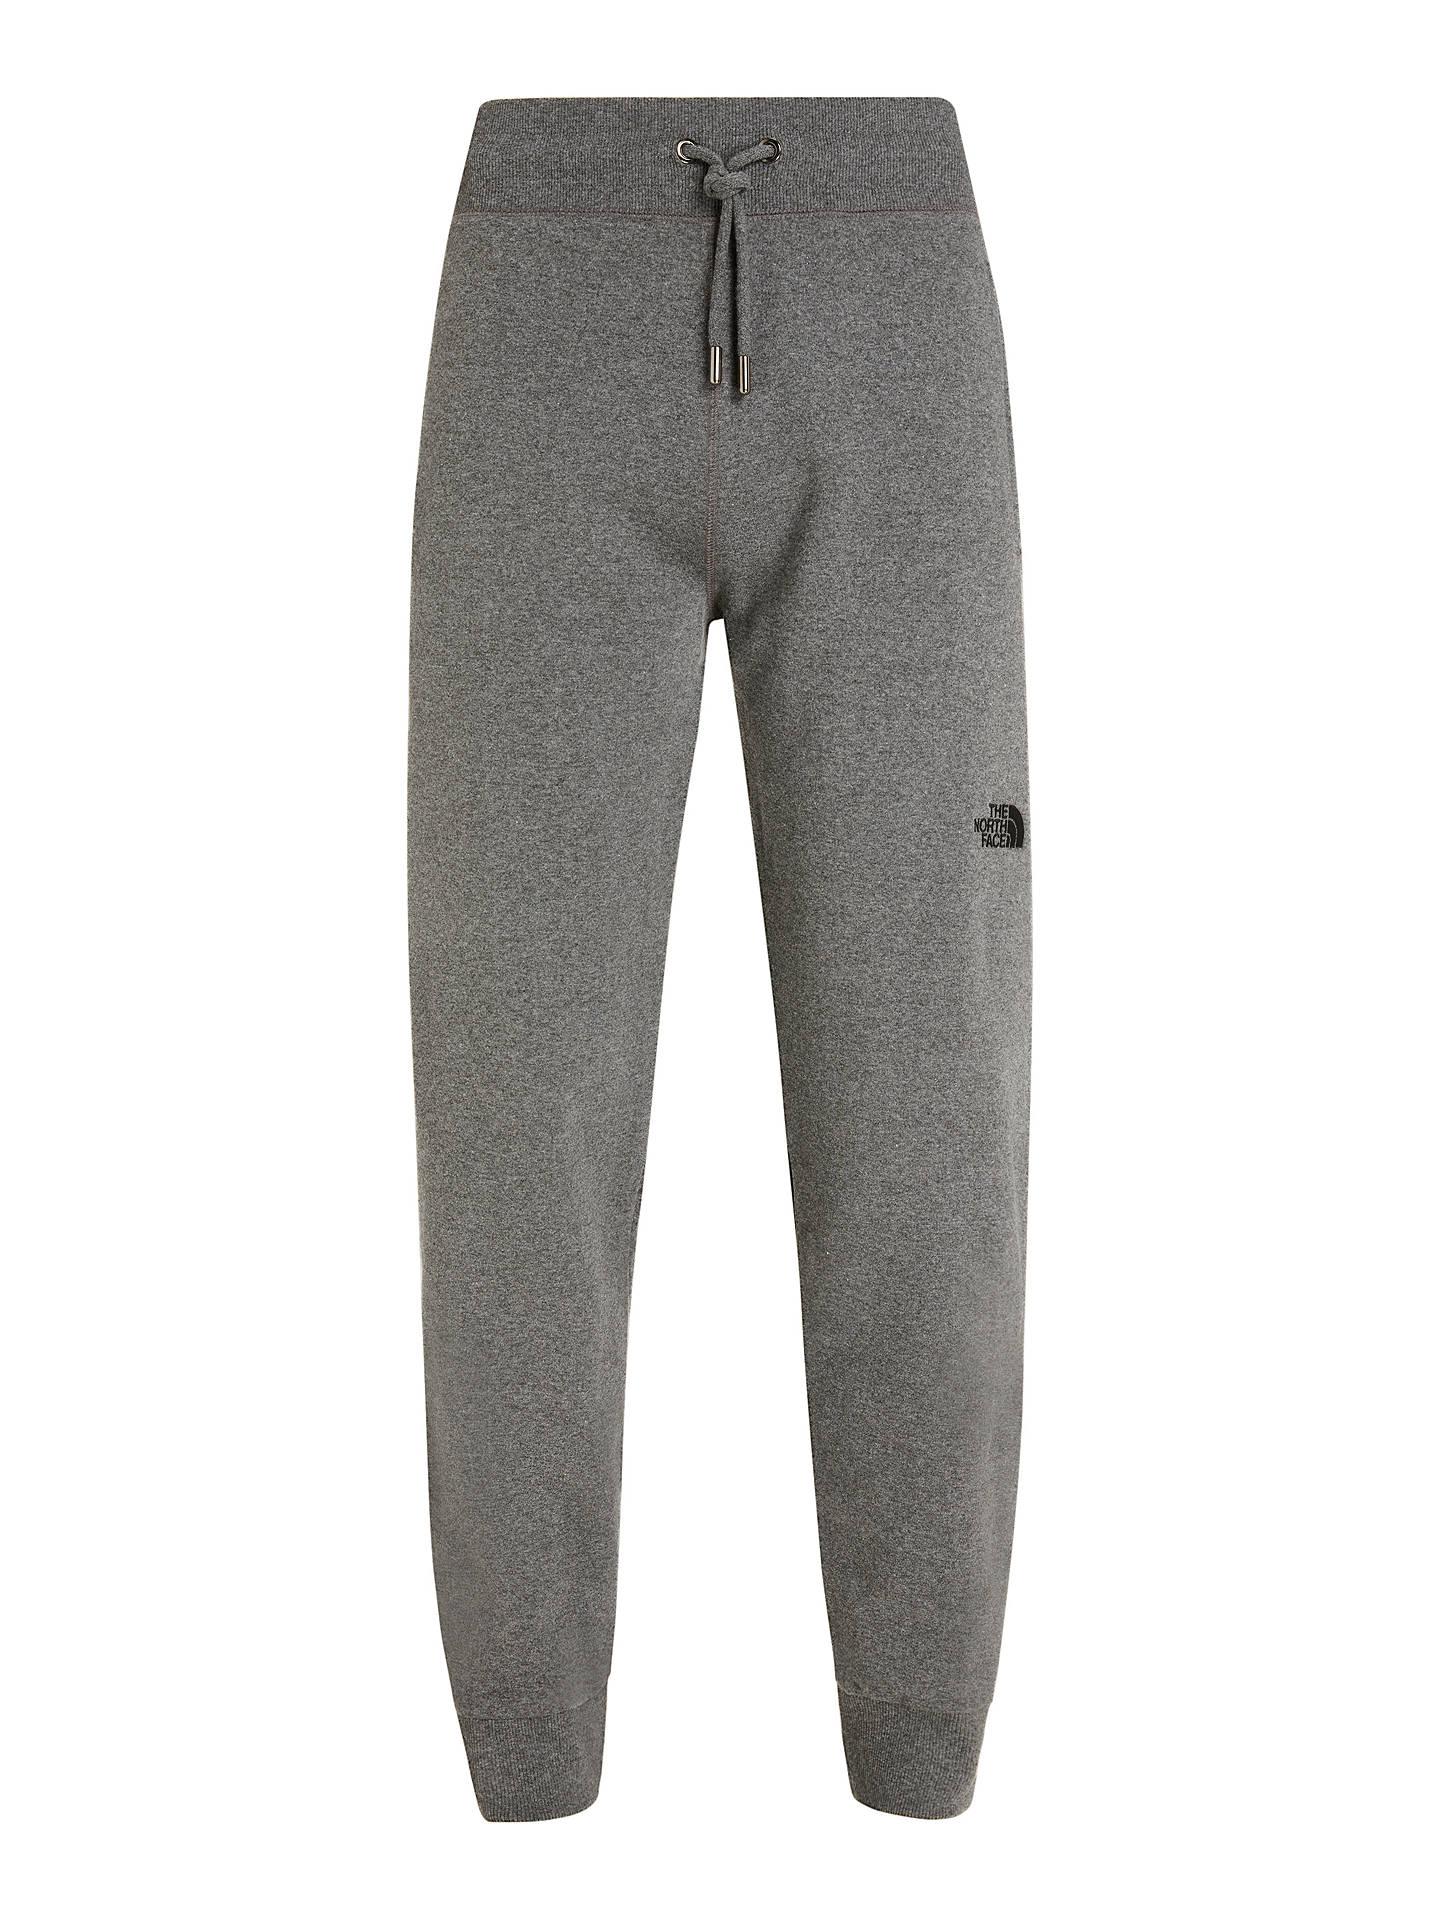 Buy The North Face NSE Bottoms, Grey, S Online at johnlewis.com